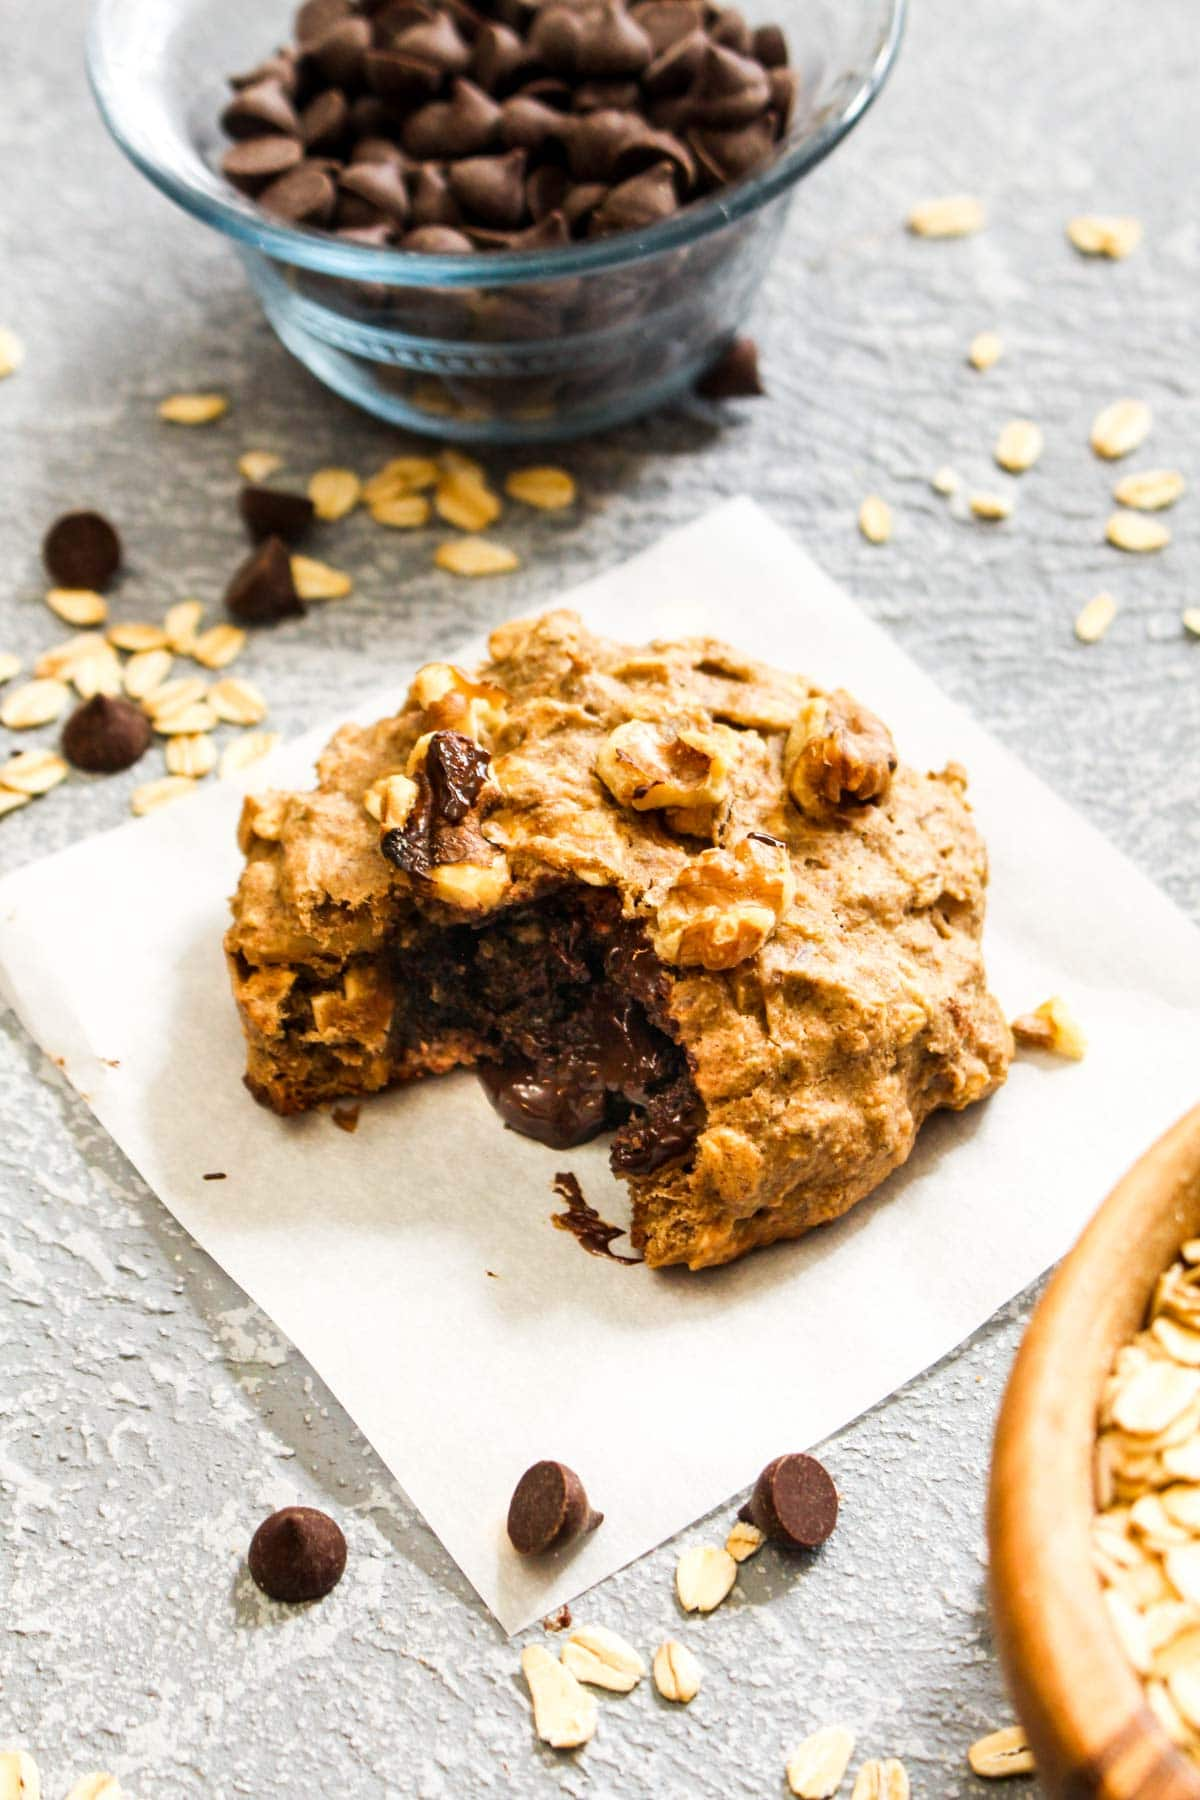 These Chocolate Stuffed Banana Nut Breakfast Cookies are making dreams come true. This recipe tastes like a soft and sweet cookie but is healthy enough to eat for the most important meal of the day. Made with gluten free whole grains and sweetened with banana and a touch of maple syrup. Gluten free, vegan, oil free, naturally sweetened. | CatchingSeeds.com